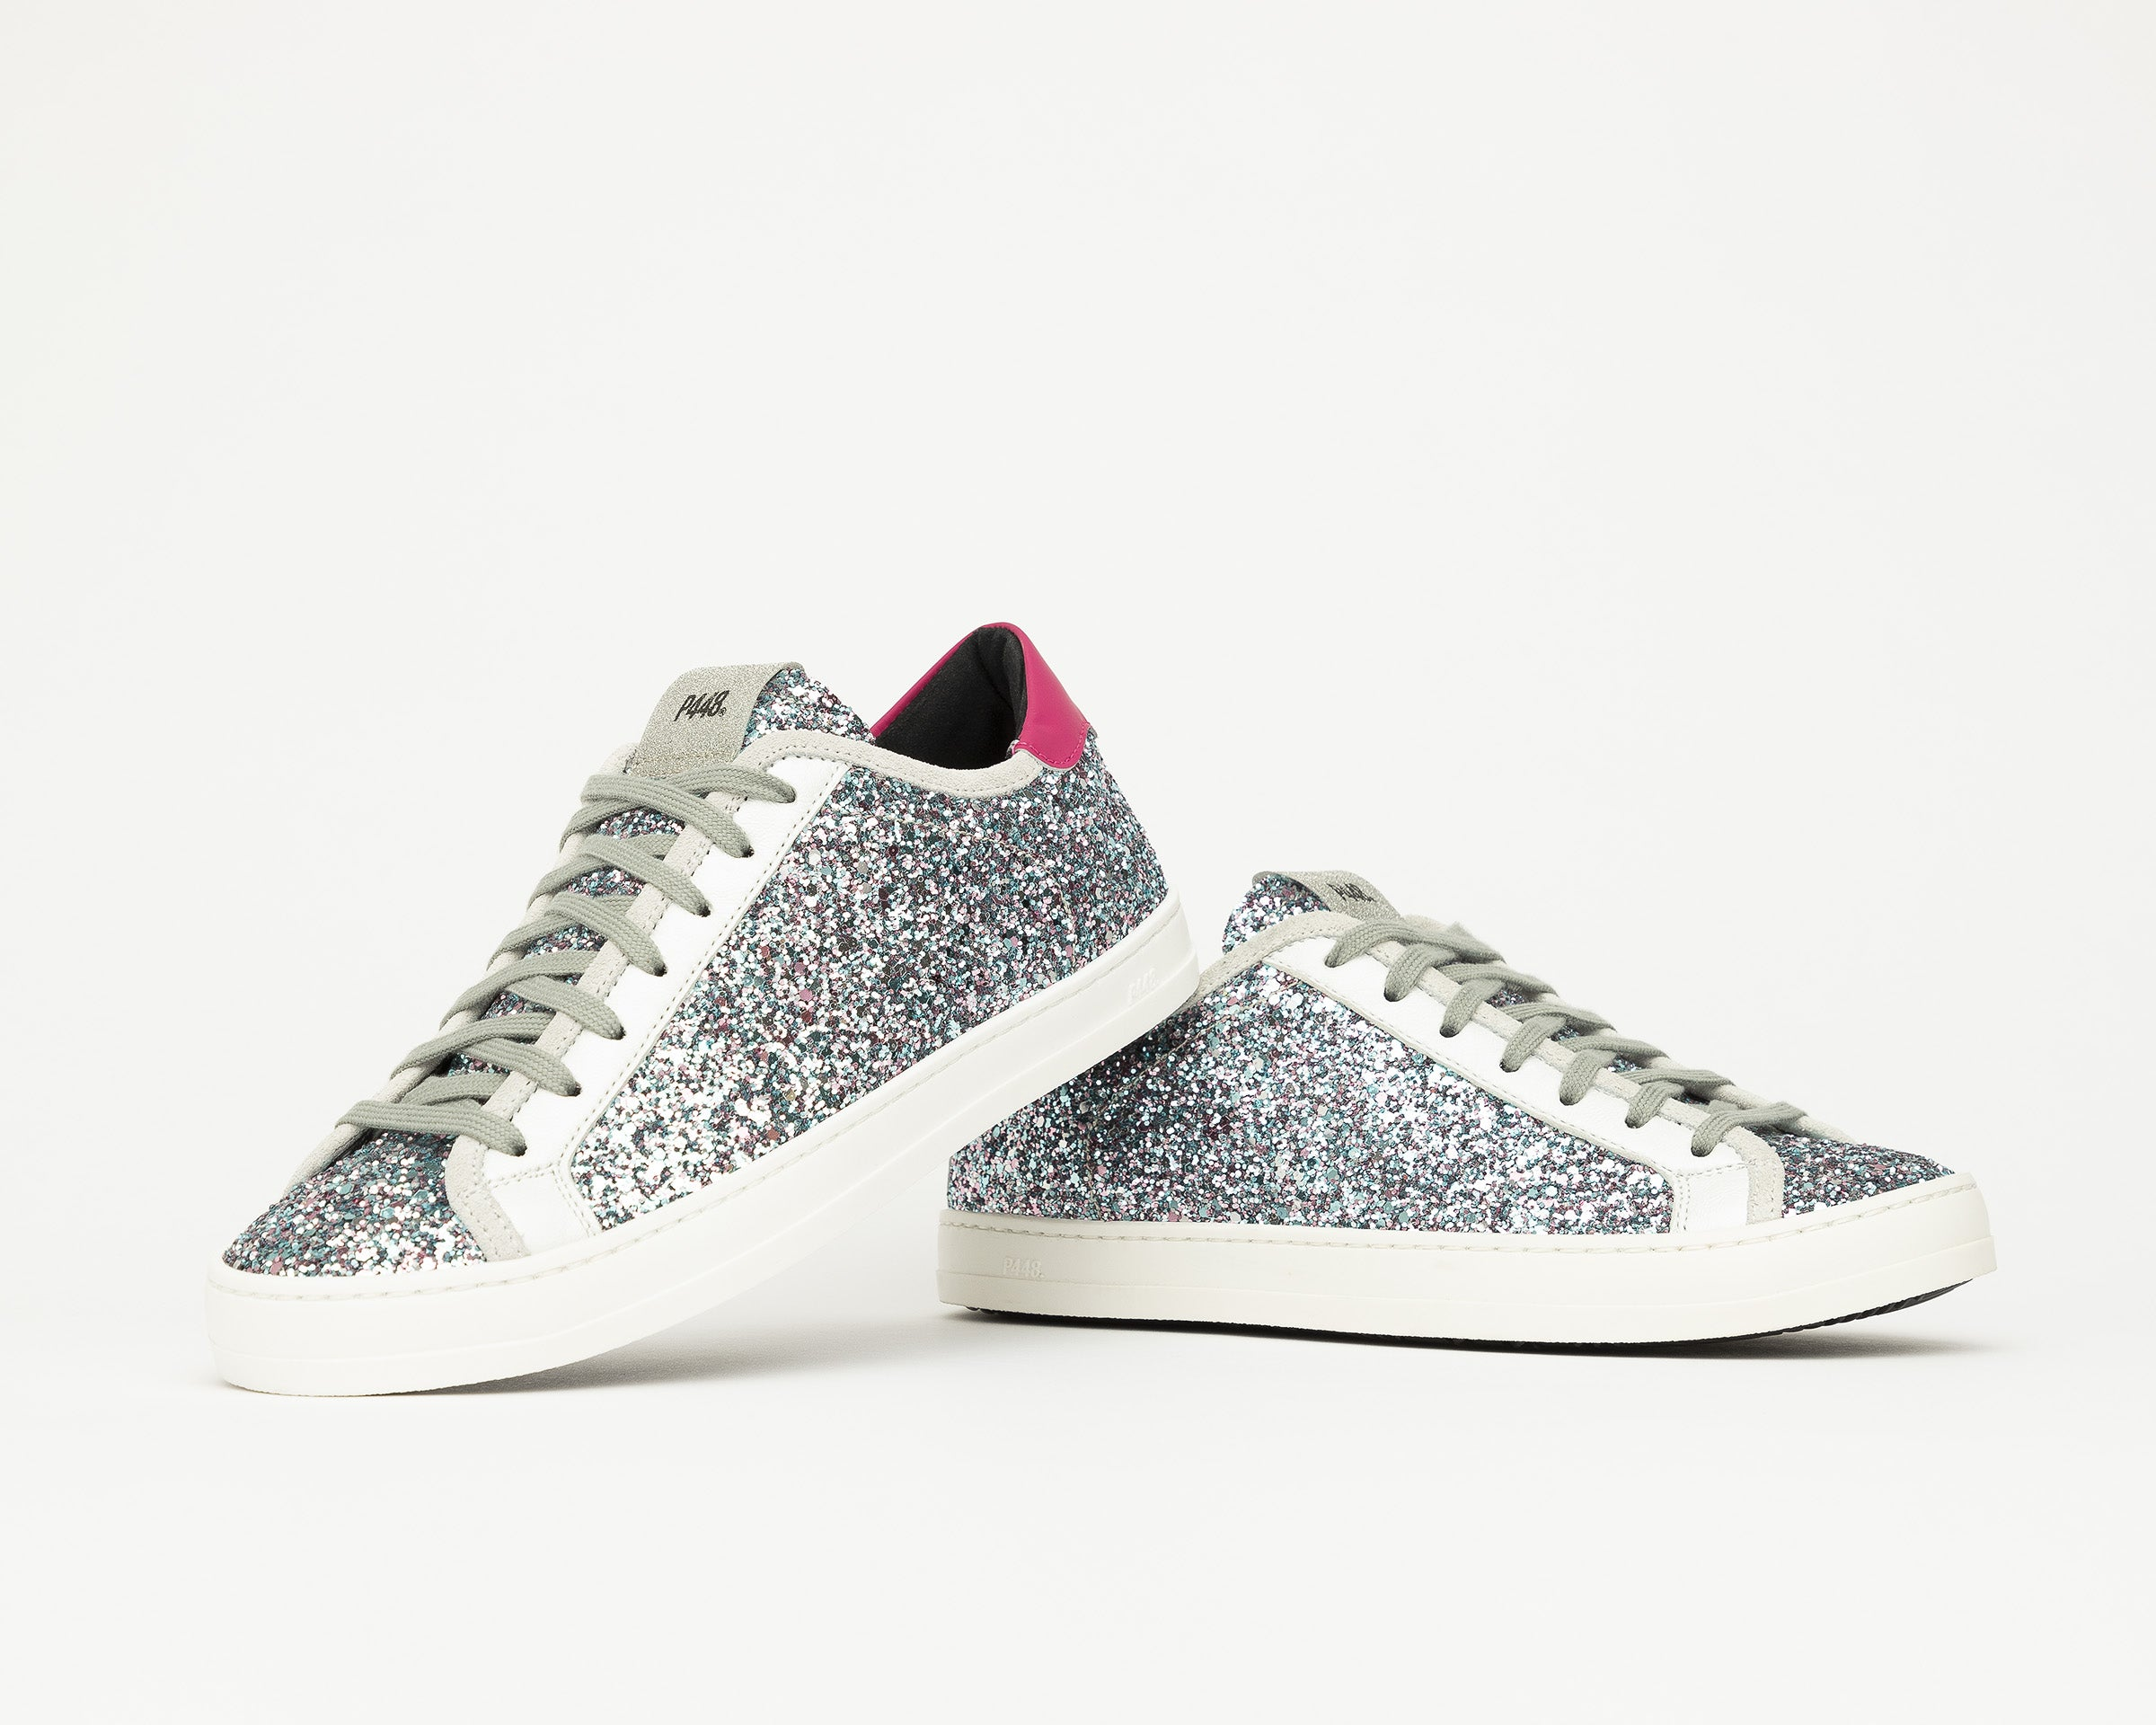 Johnny Low-Top Sneaker in LBL/Glitter - Detail